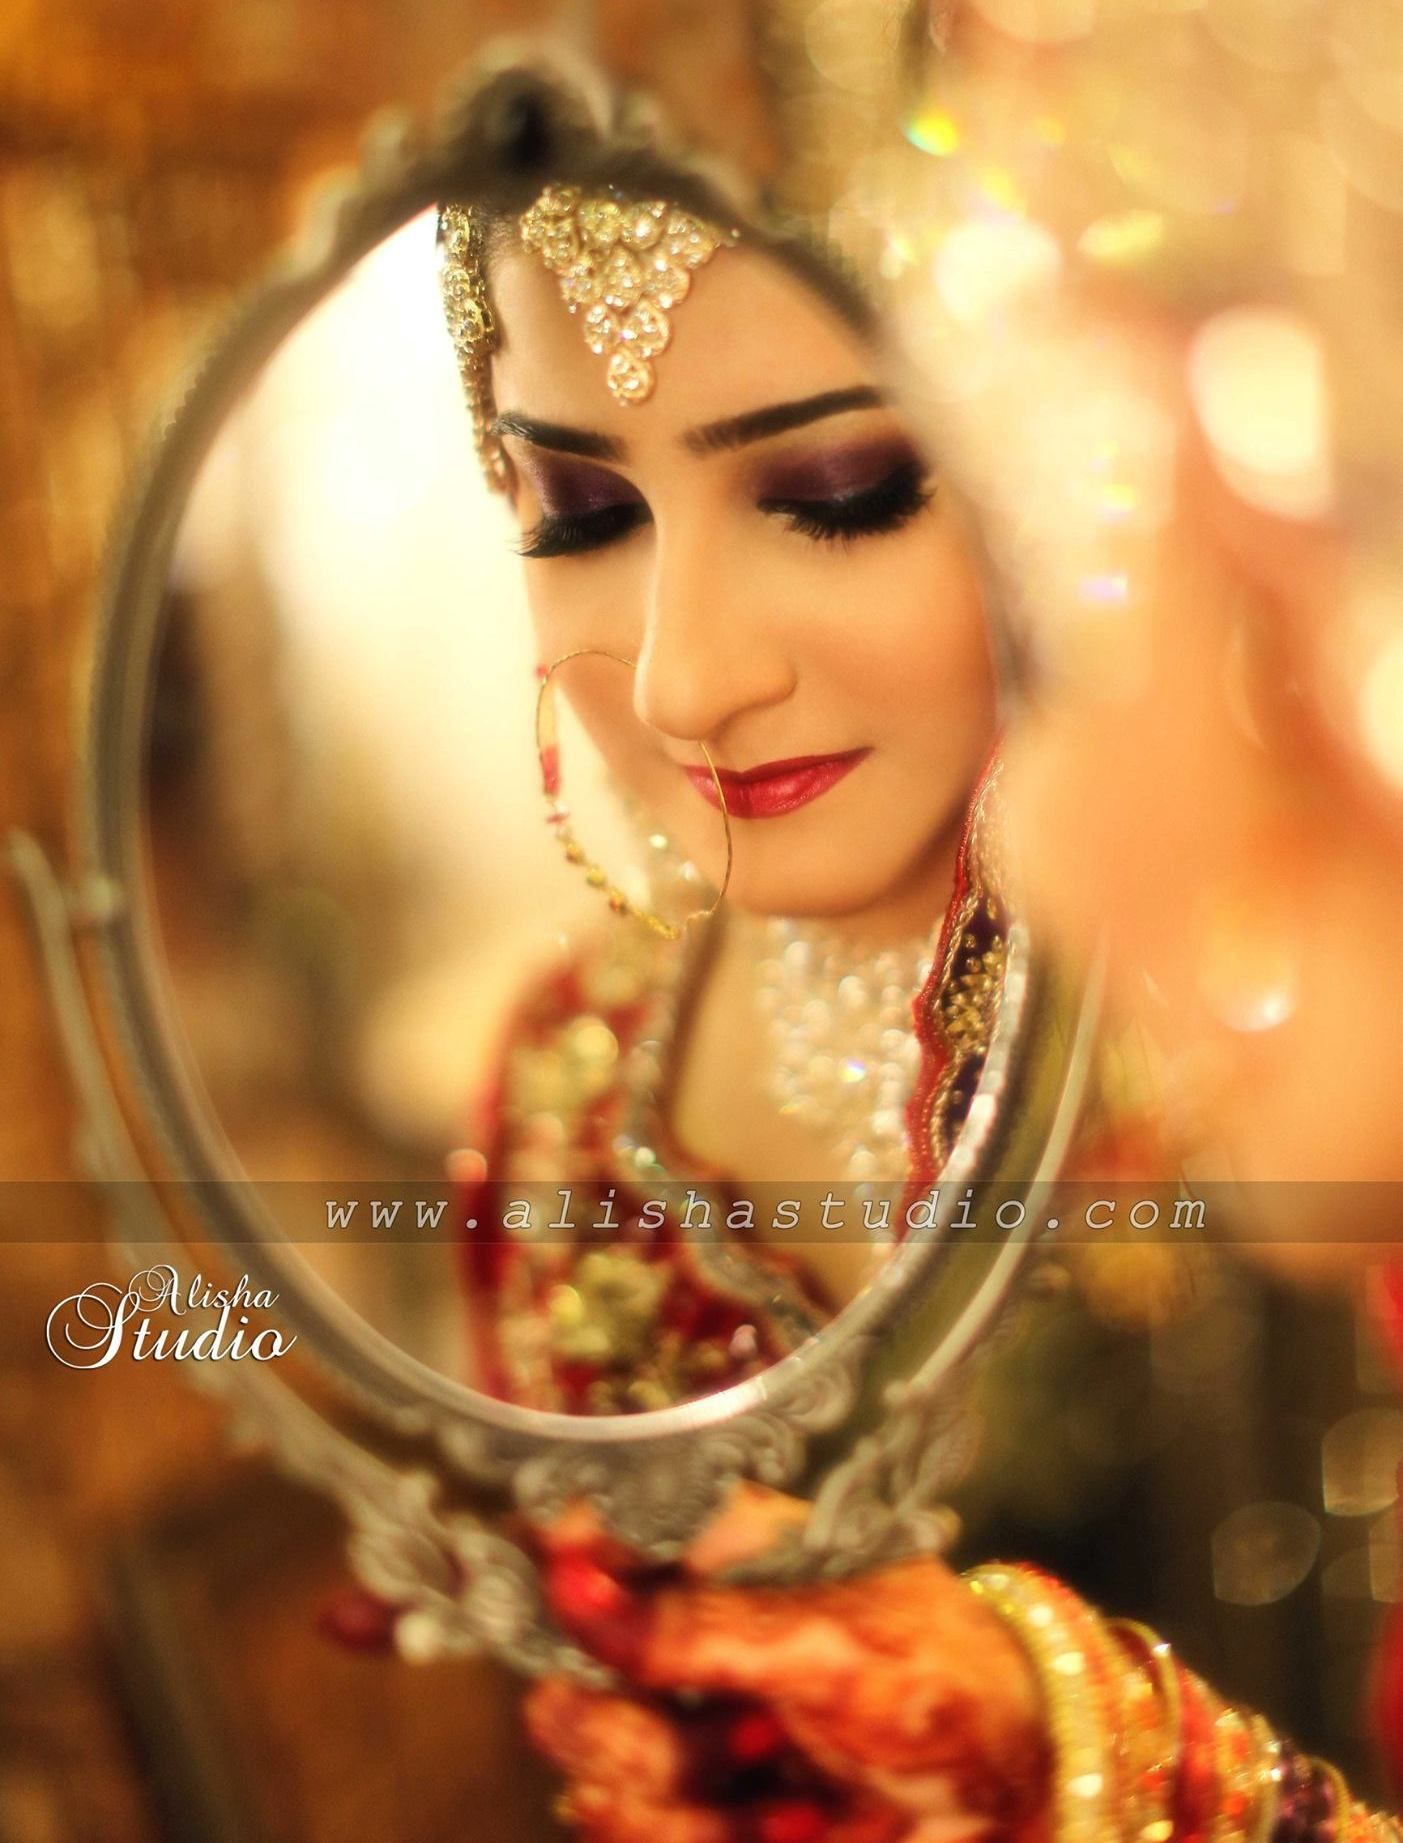 Pakistani Bride Very Beautiful Bride Photoshoot Indian Wedding Photography Poses Indian Wedding Photography